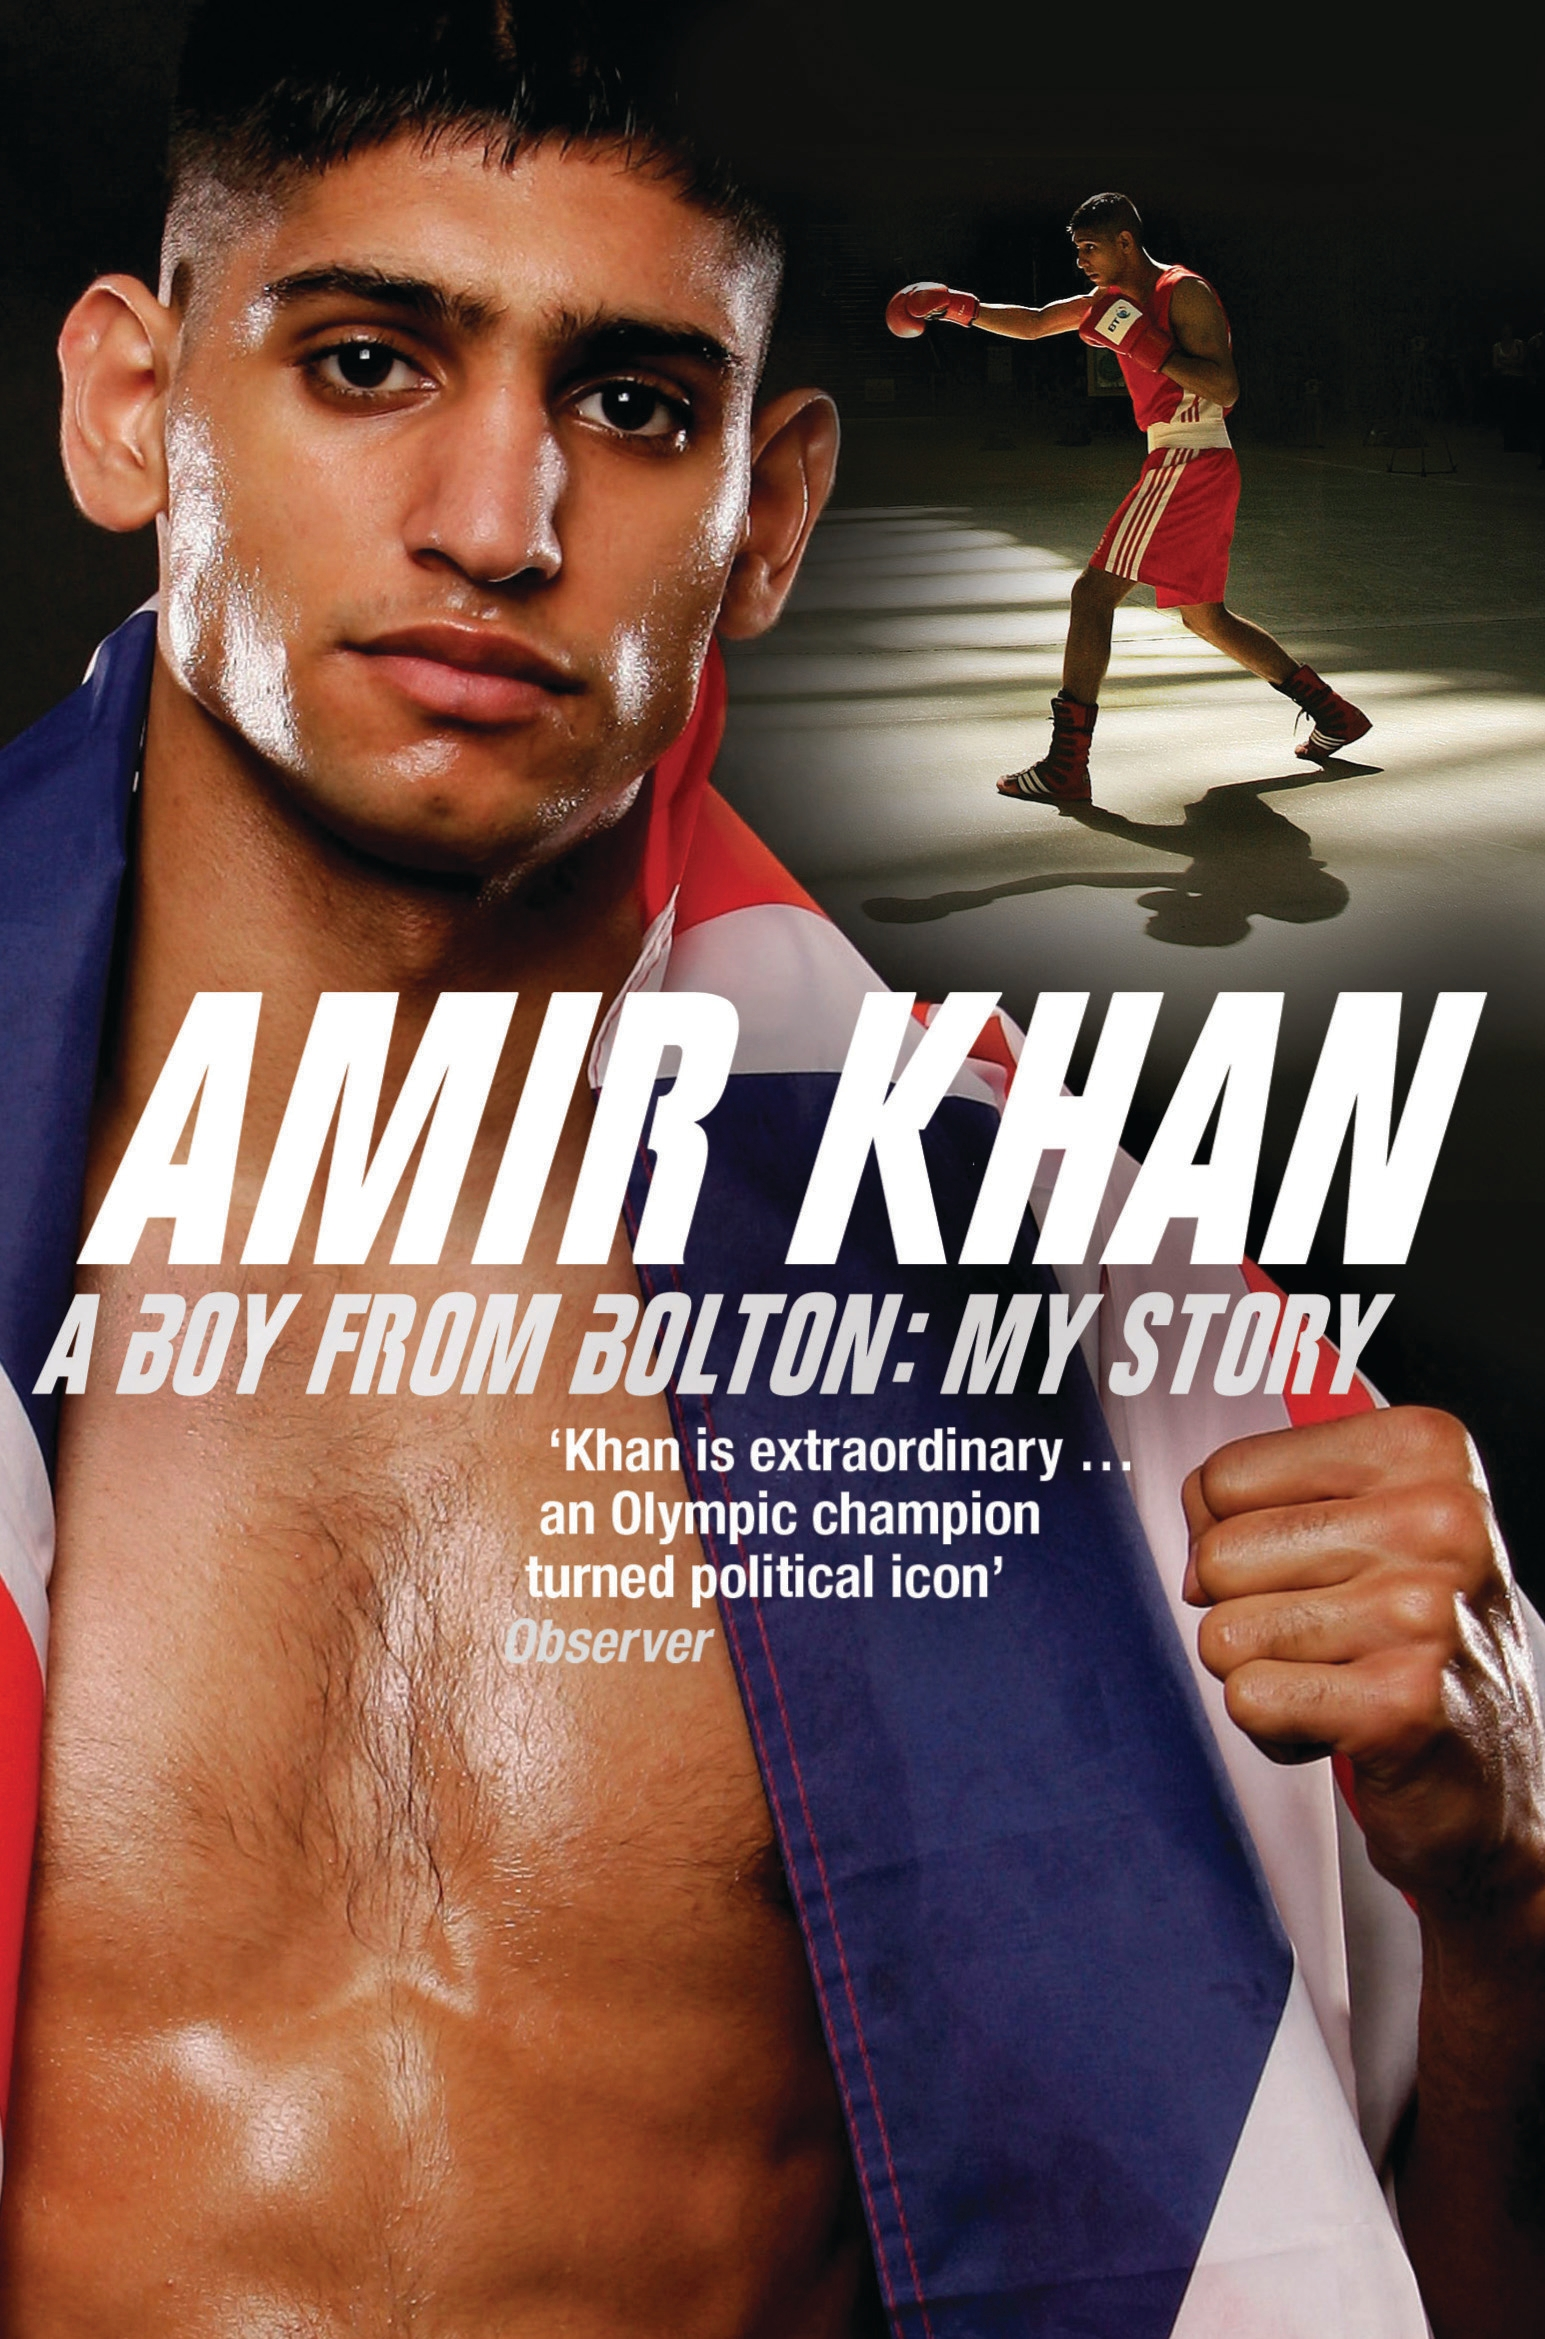 Amir Khan A Boy From Bolton: My Story